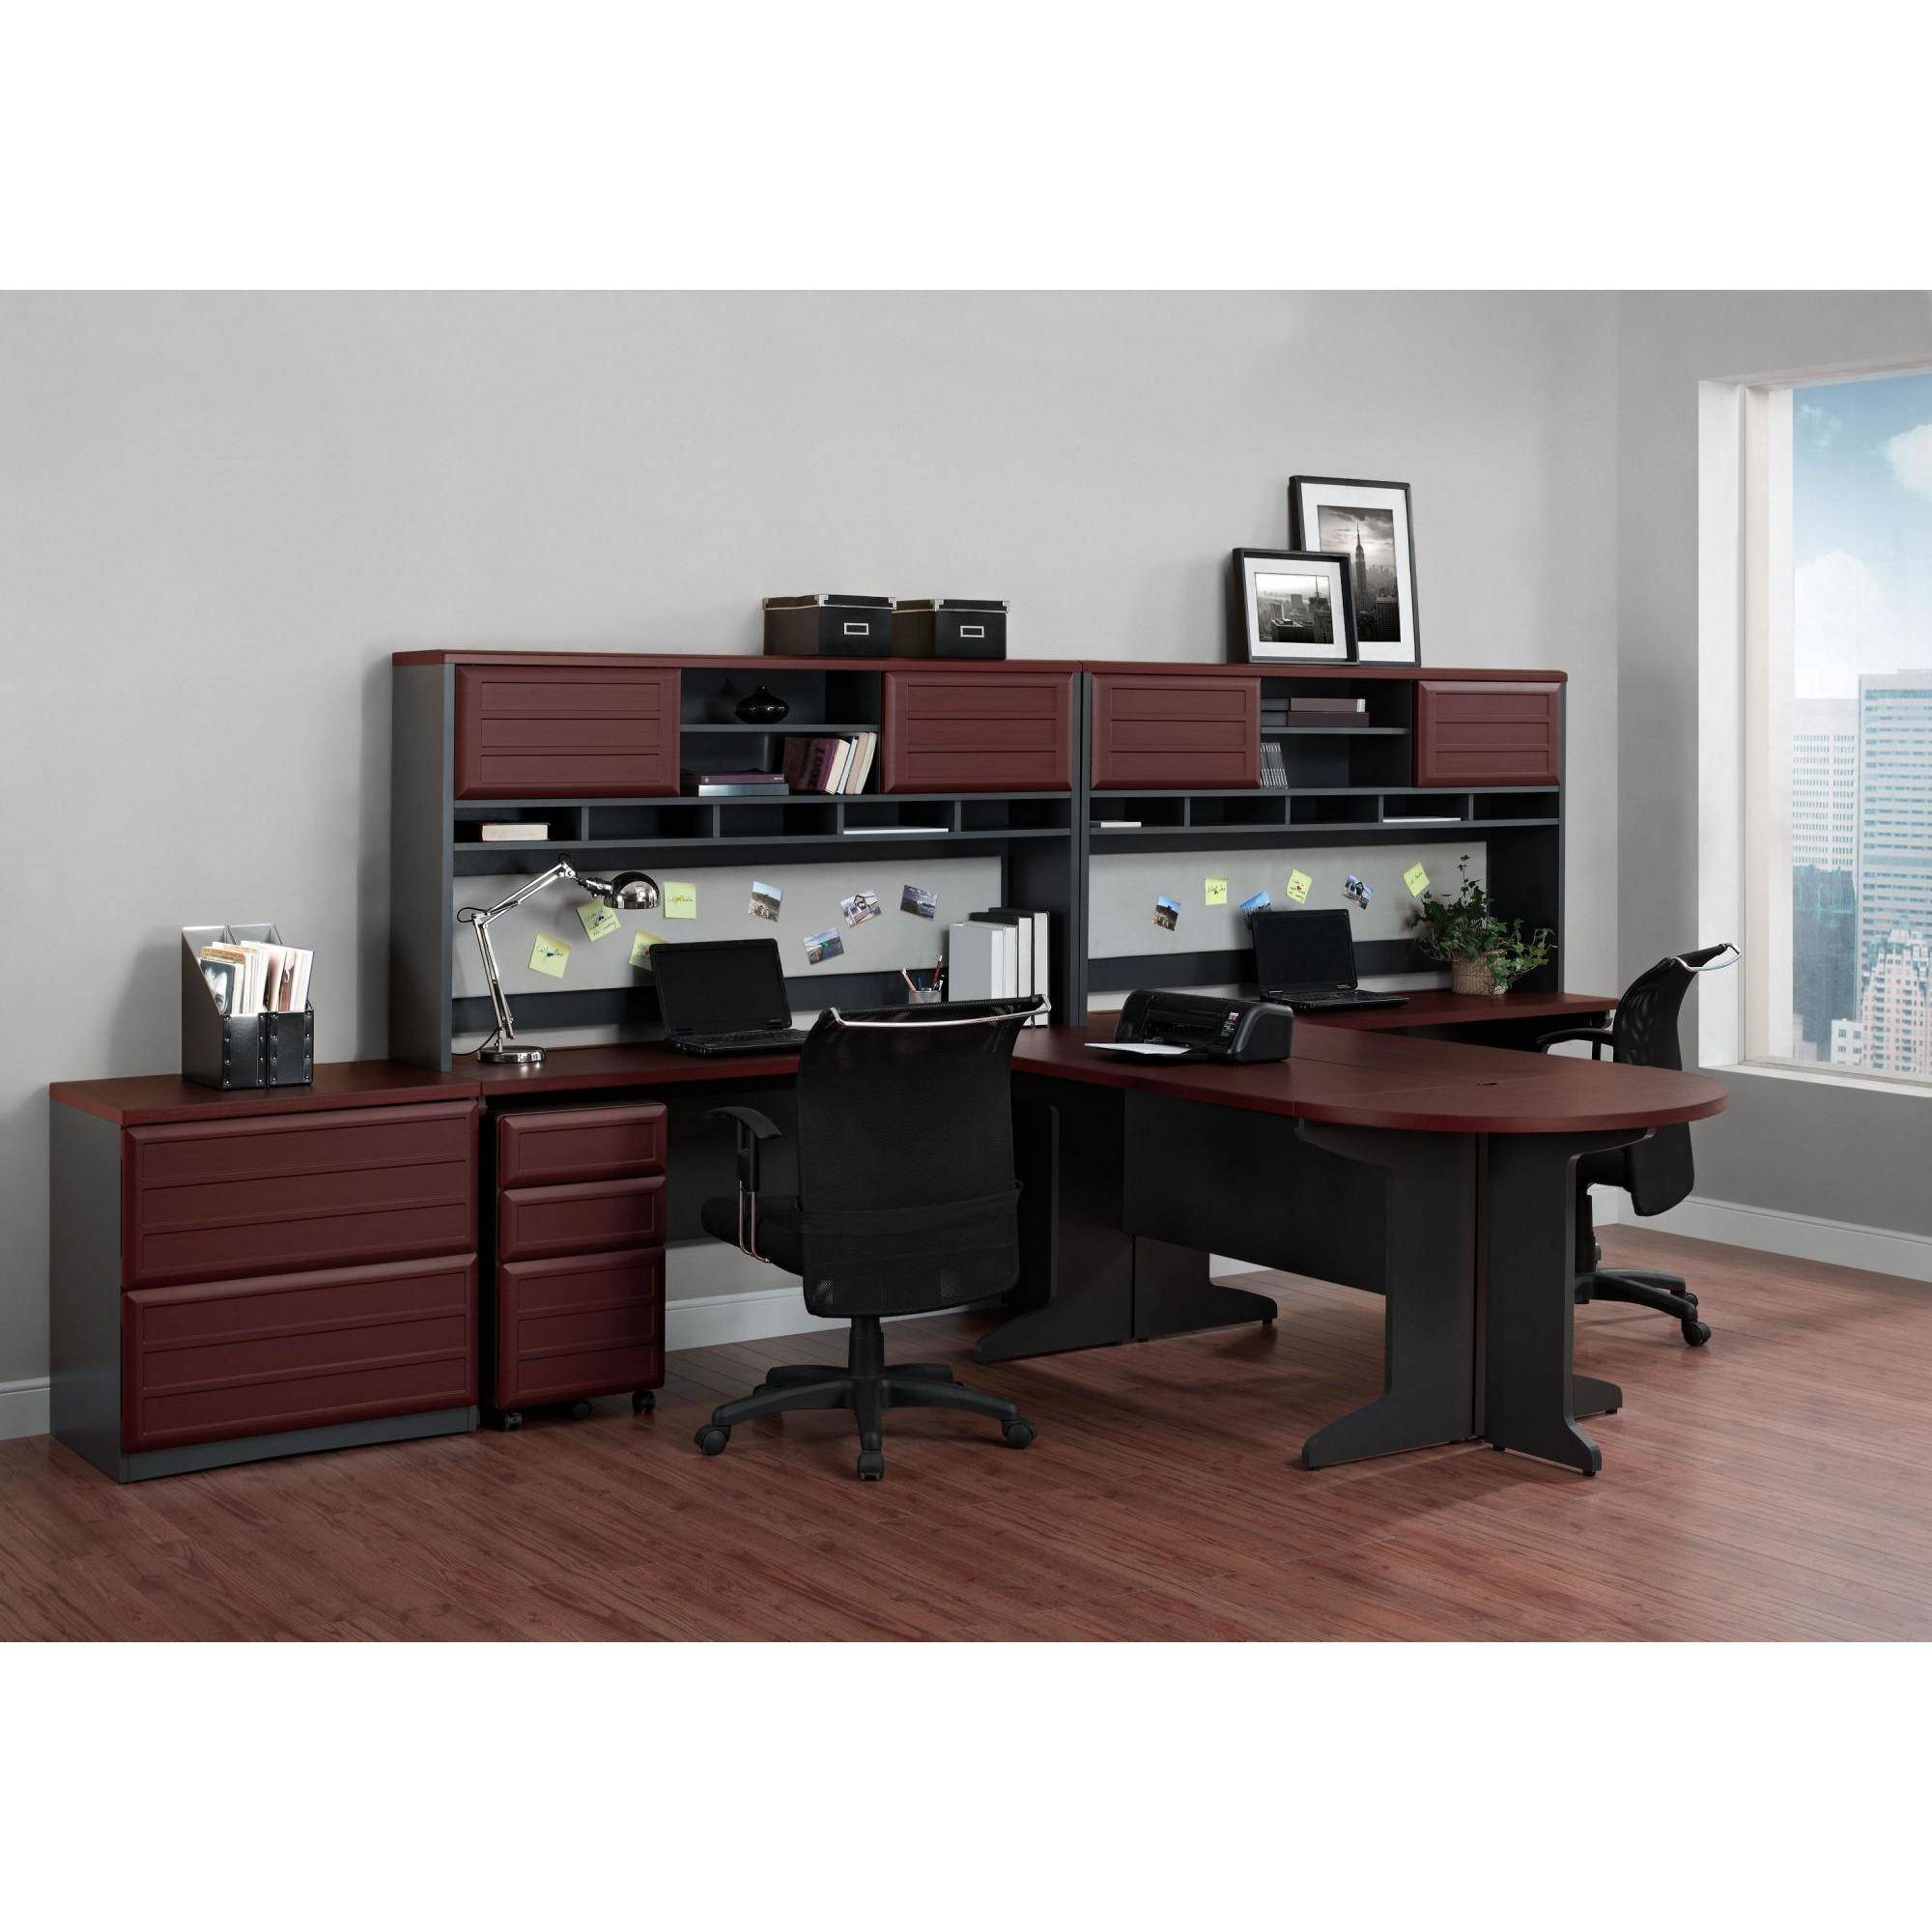 ameriwood home pursuit executive desk, cherry/gray - walmart